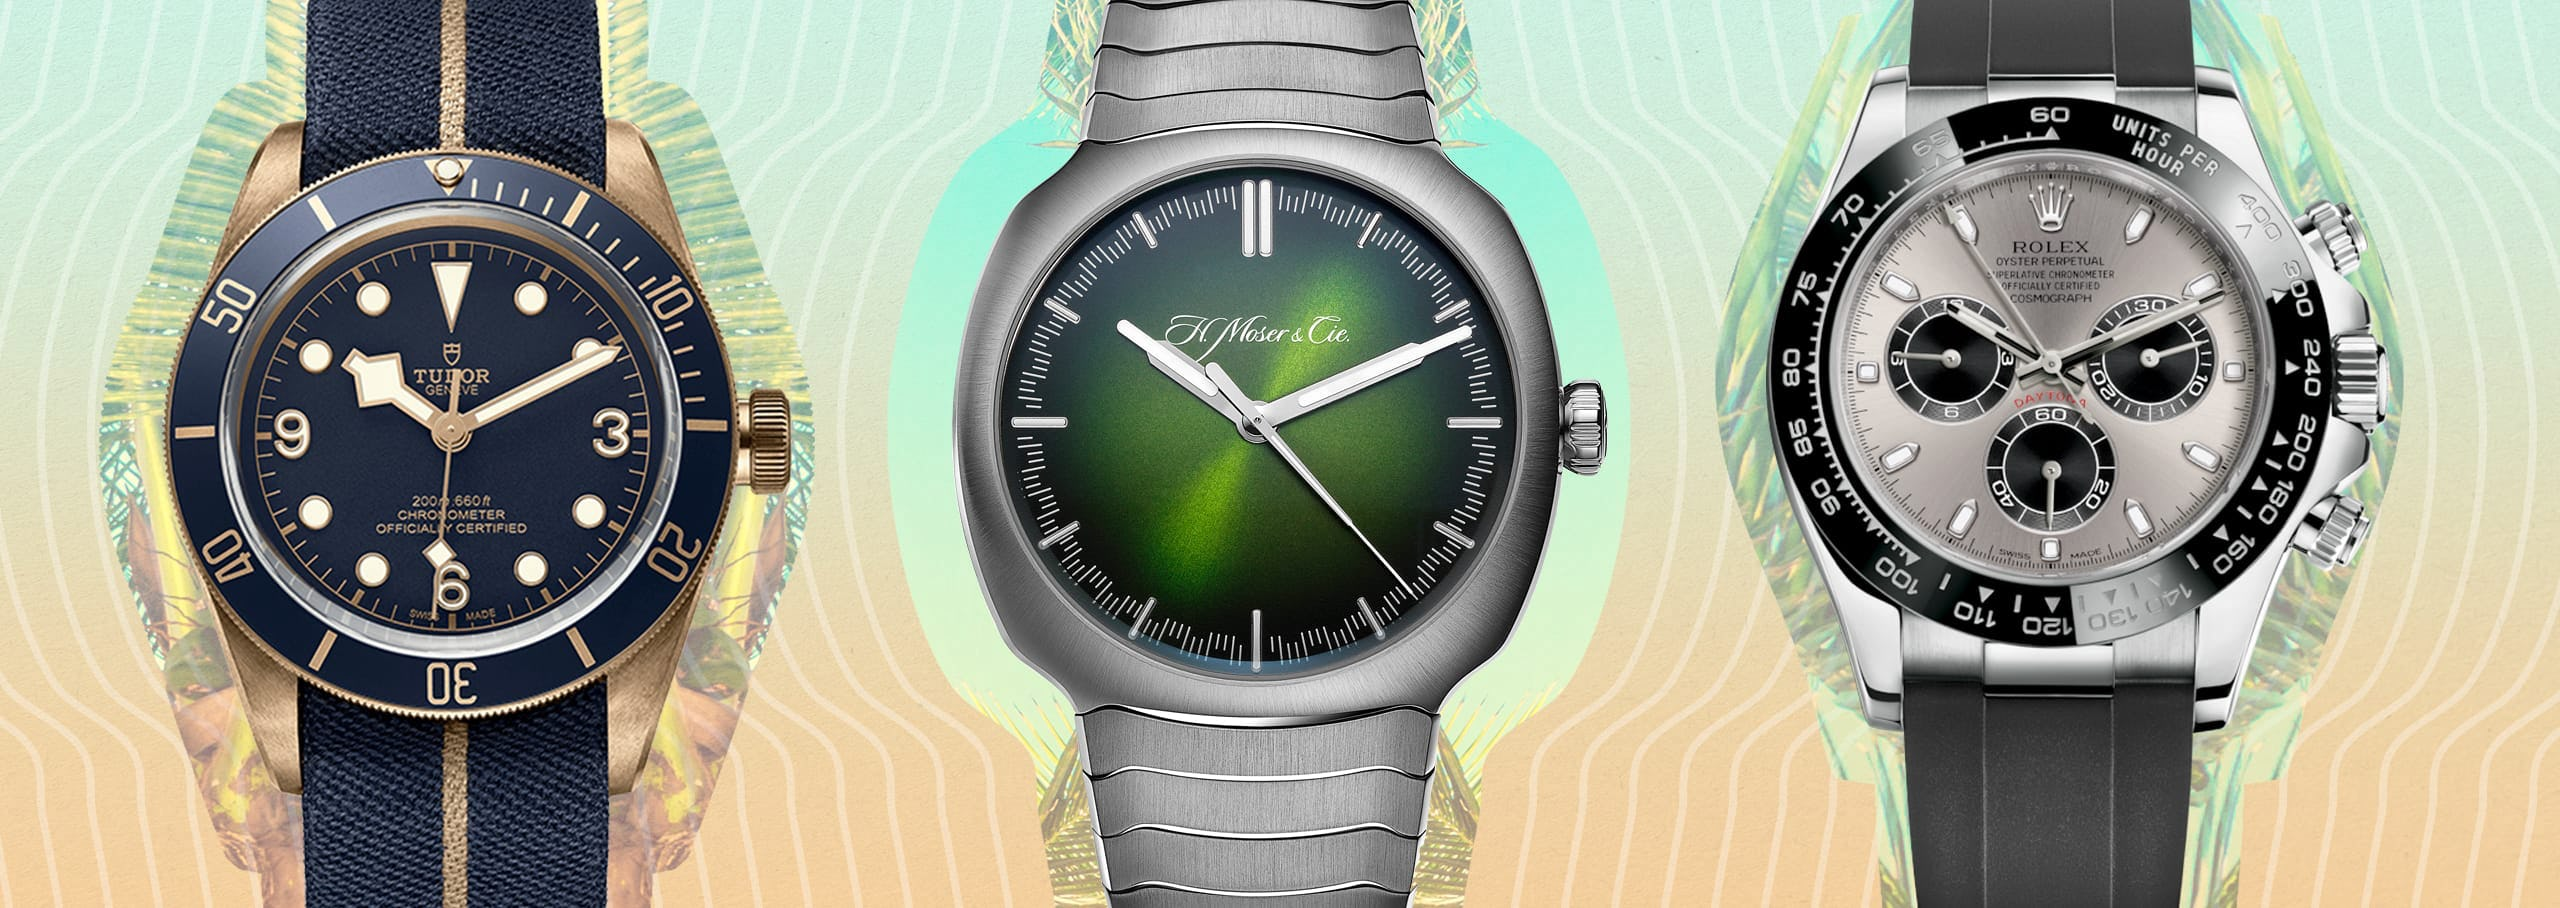 A Round-Up of Favorite Summer Watches from Our House